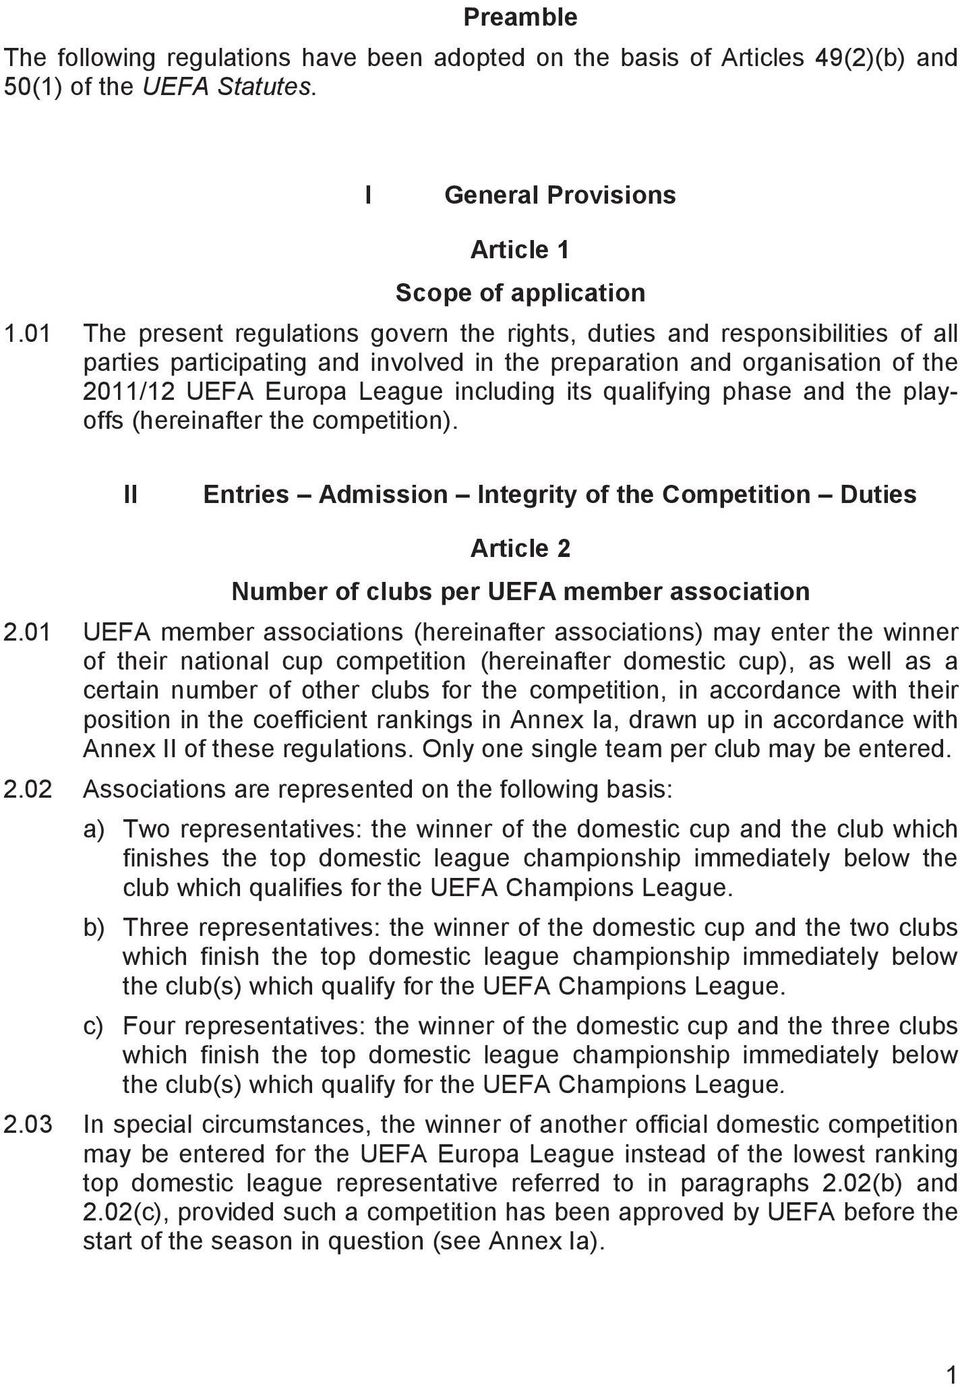 qualifying phase and the playoffs (hereinafter the competition). II Entries Admission Integrity of the Competition Duties Article 2 Number of clubs per UEFA member association 2.